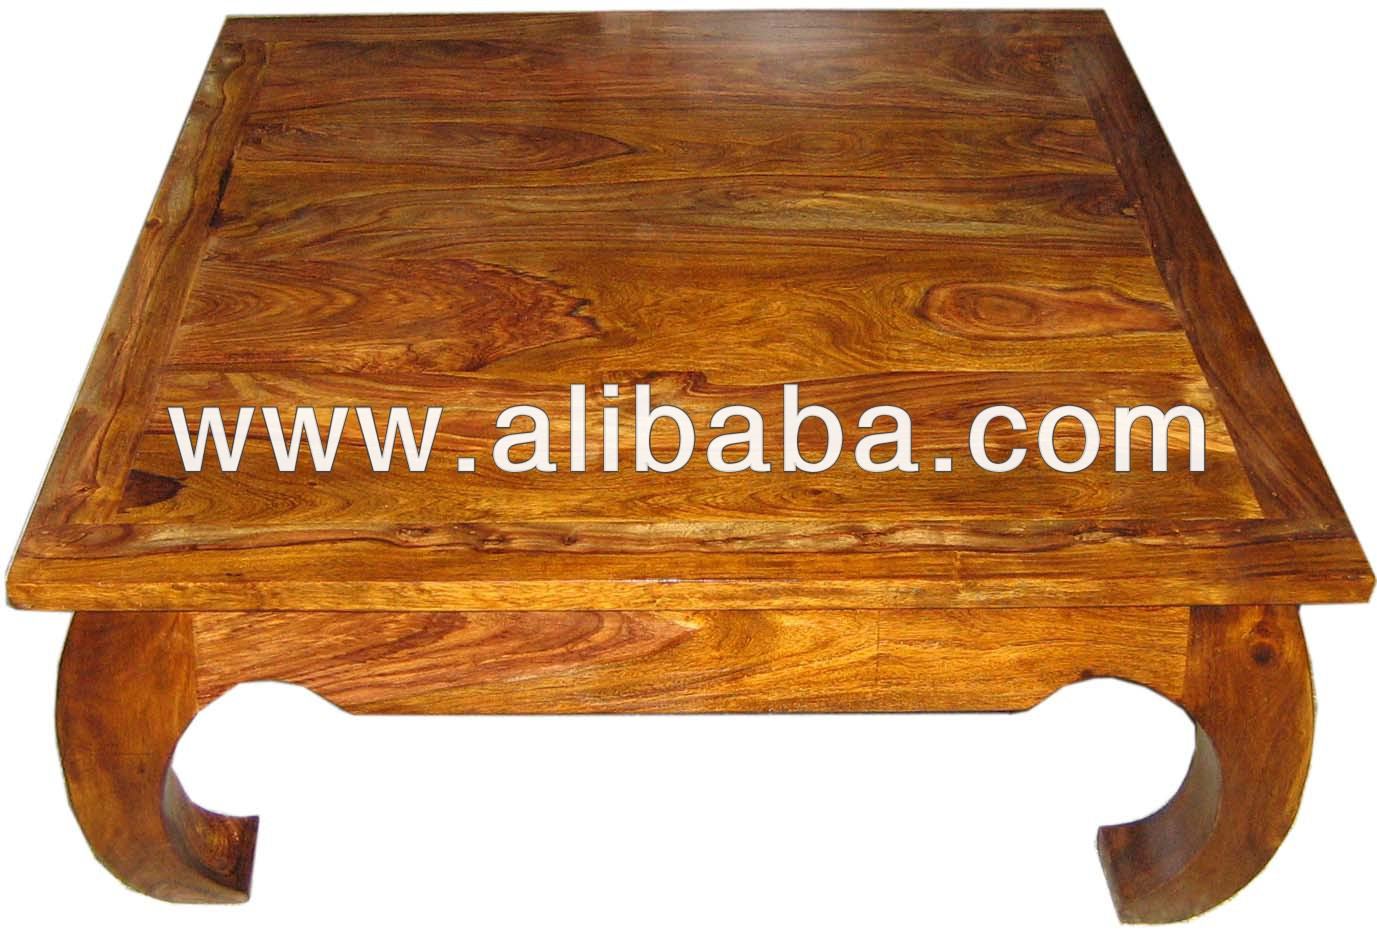 Table english pub table antique periodic table product on alibaba com - India Periodic Table India Periodic Table Manufacturers And Suppliers On Alibaba Com